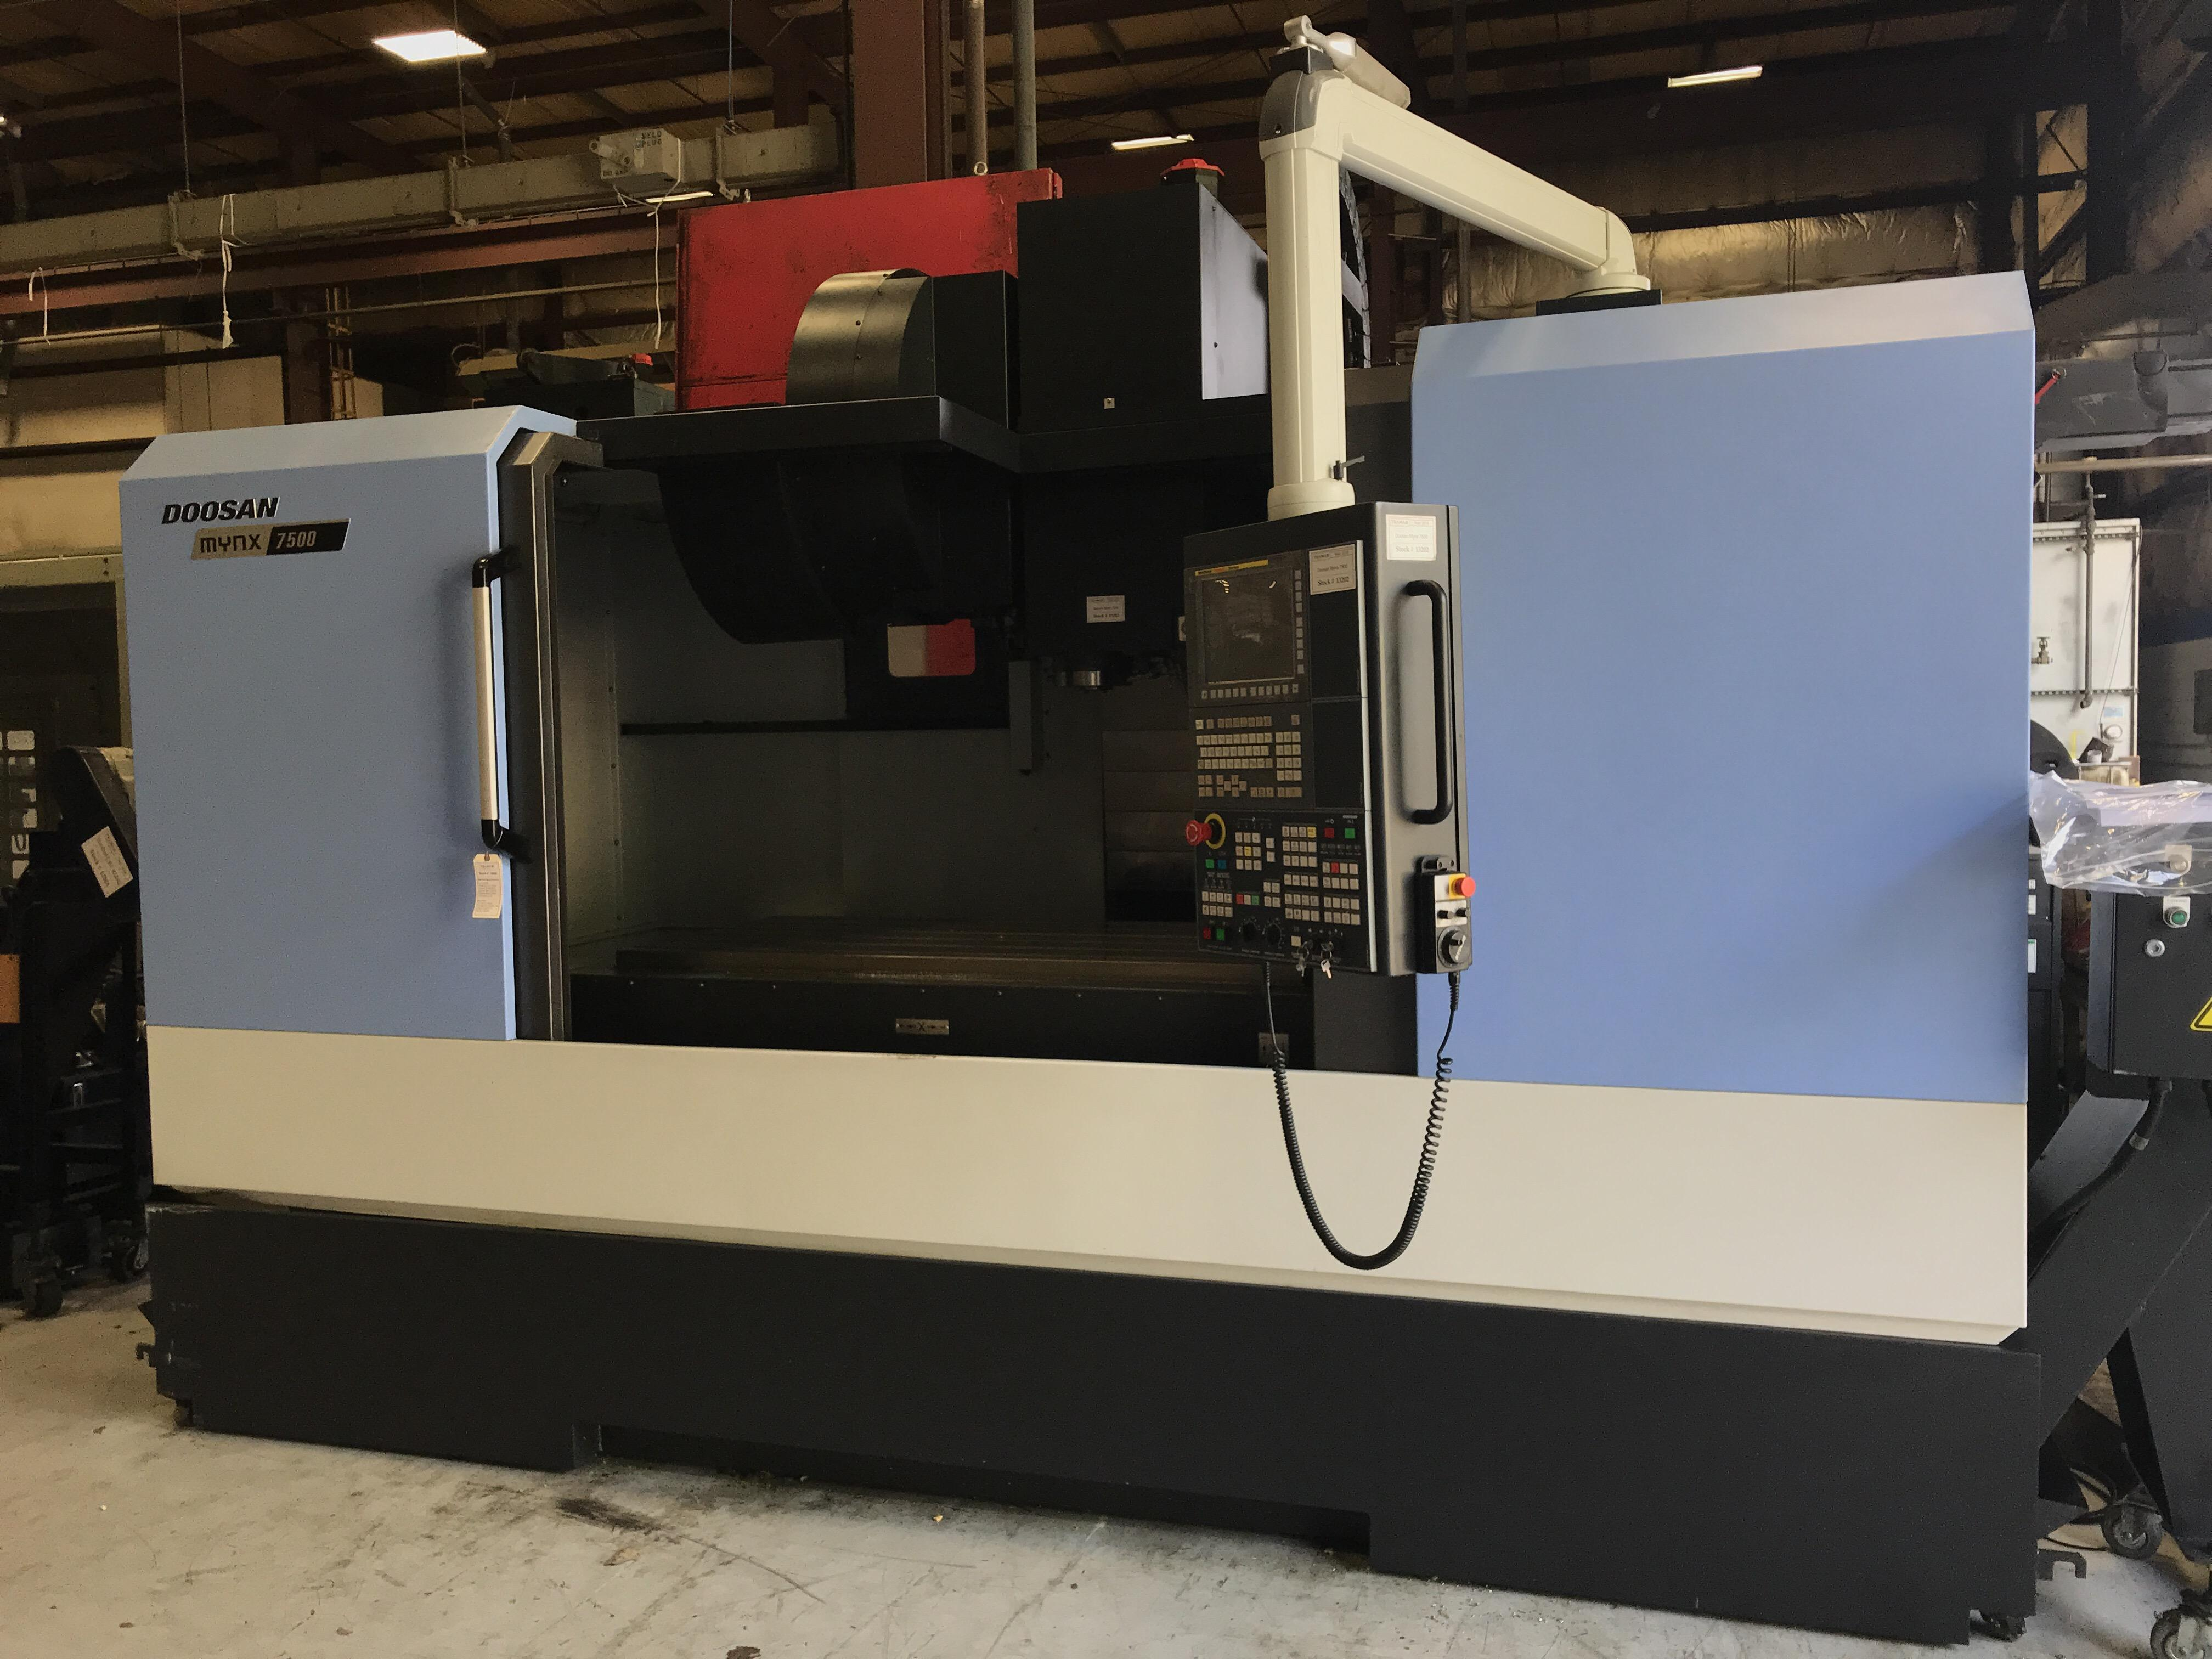 2016 Doosan Mynx 7500 - Vertical Machining Center